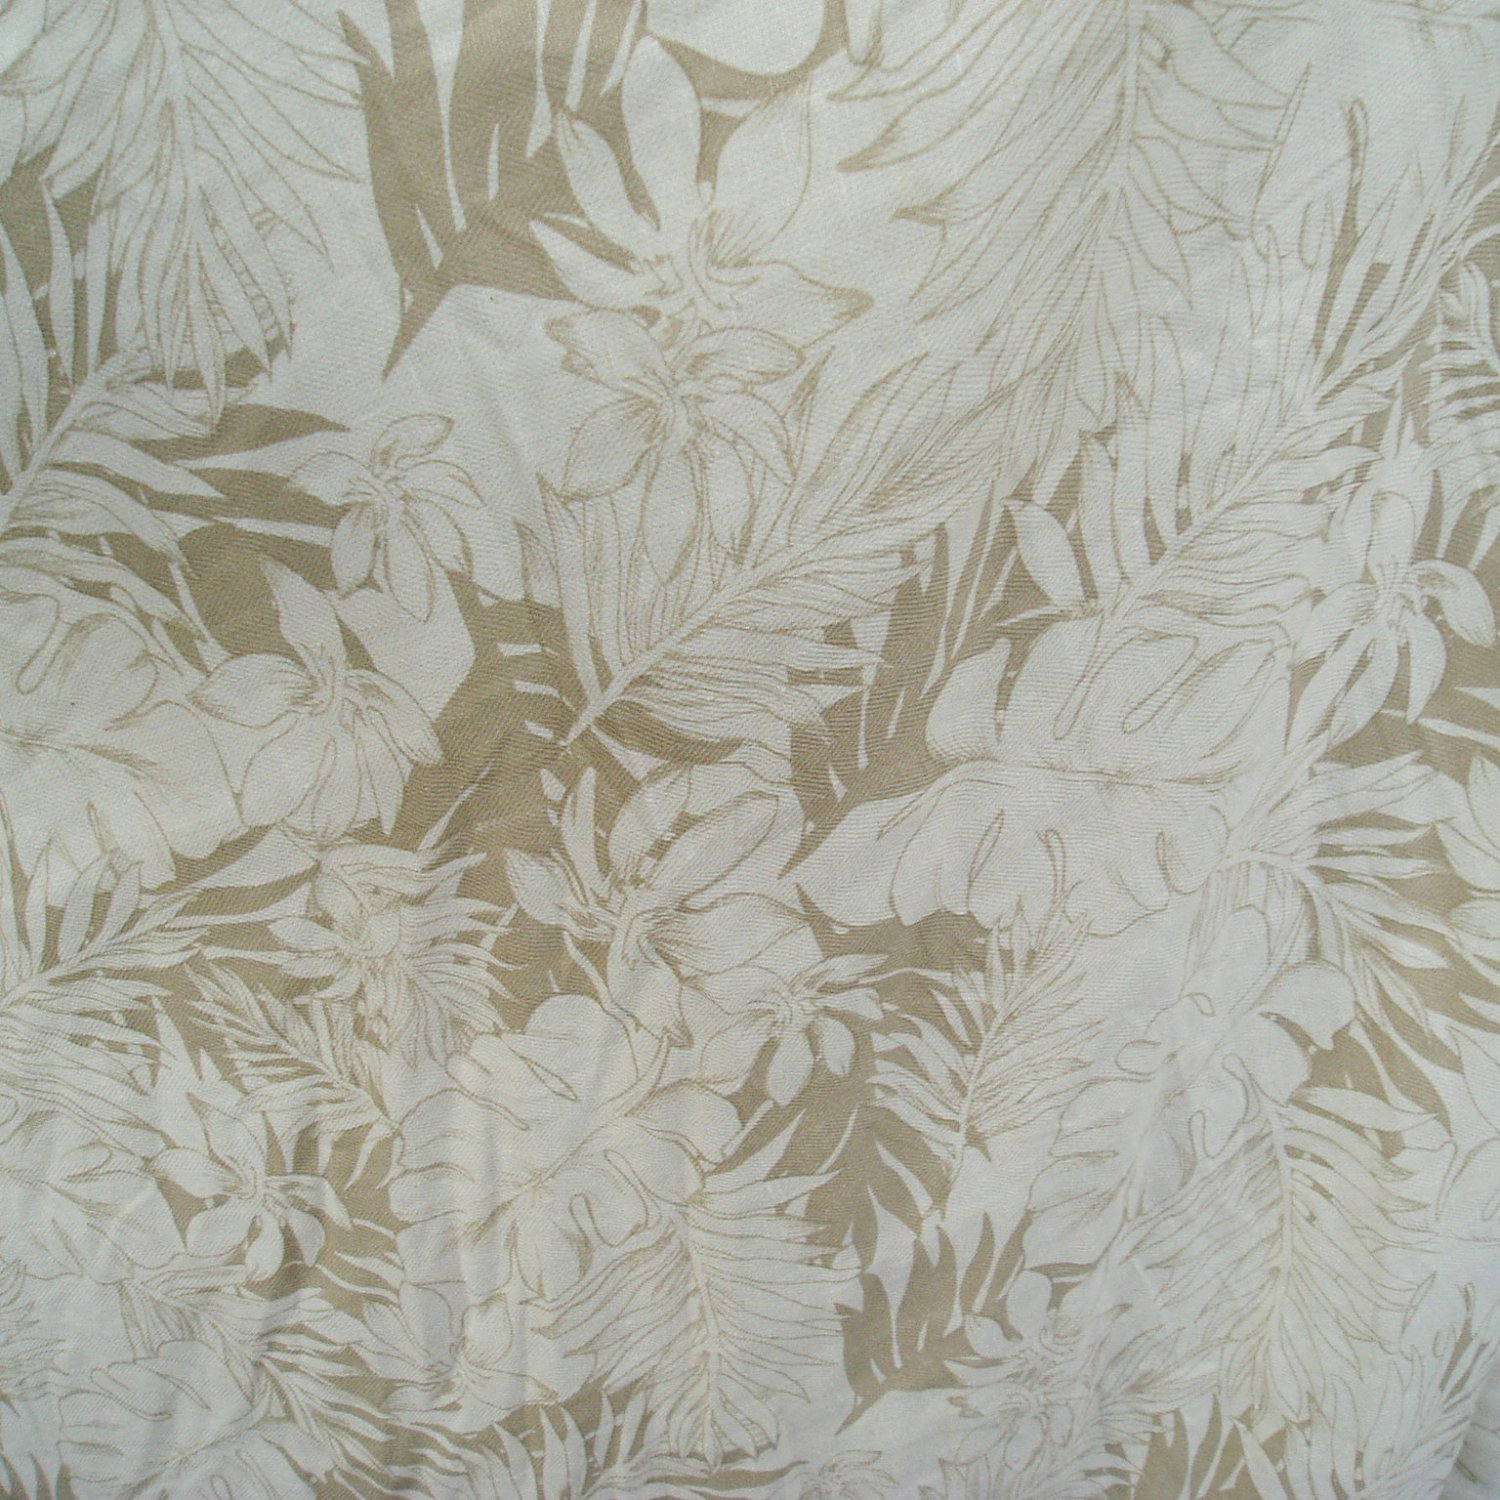 spun silk fabric textured leaf motif sell by meter